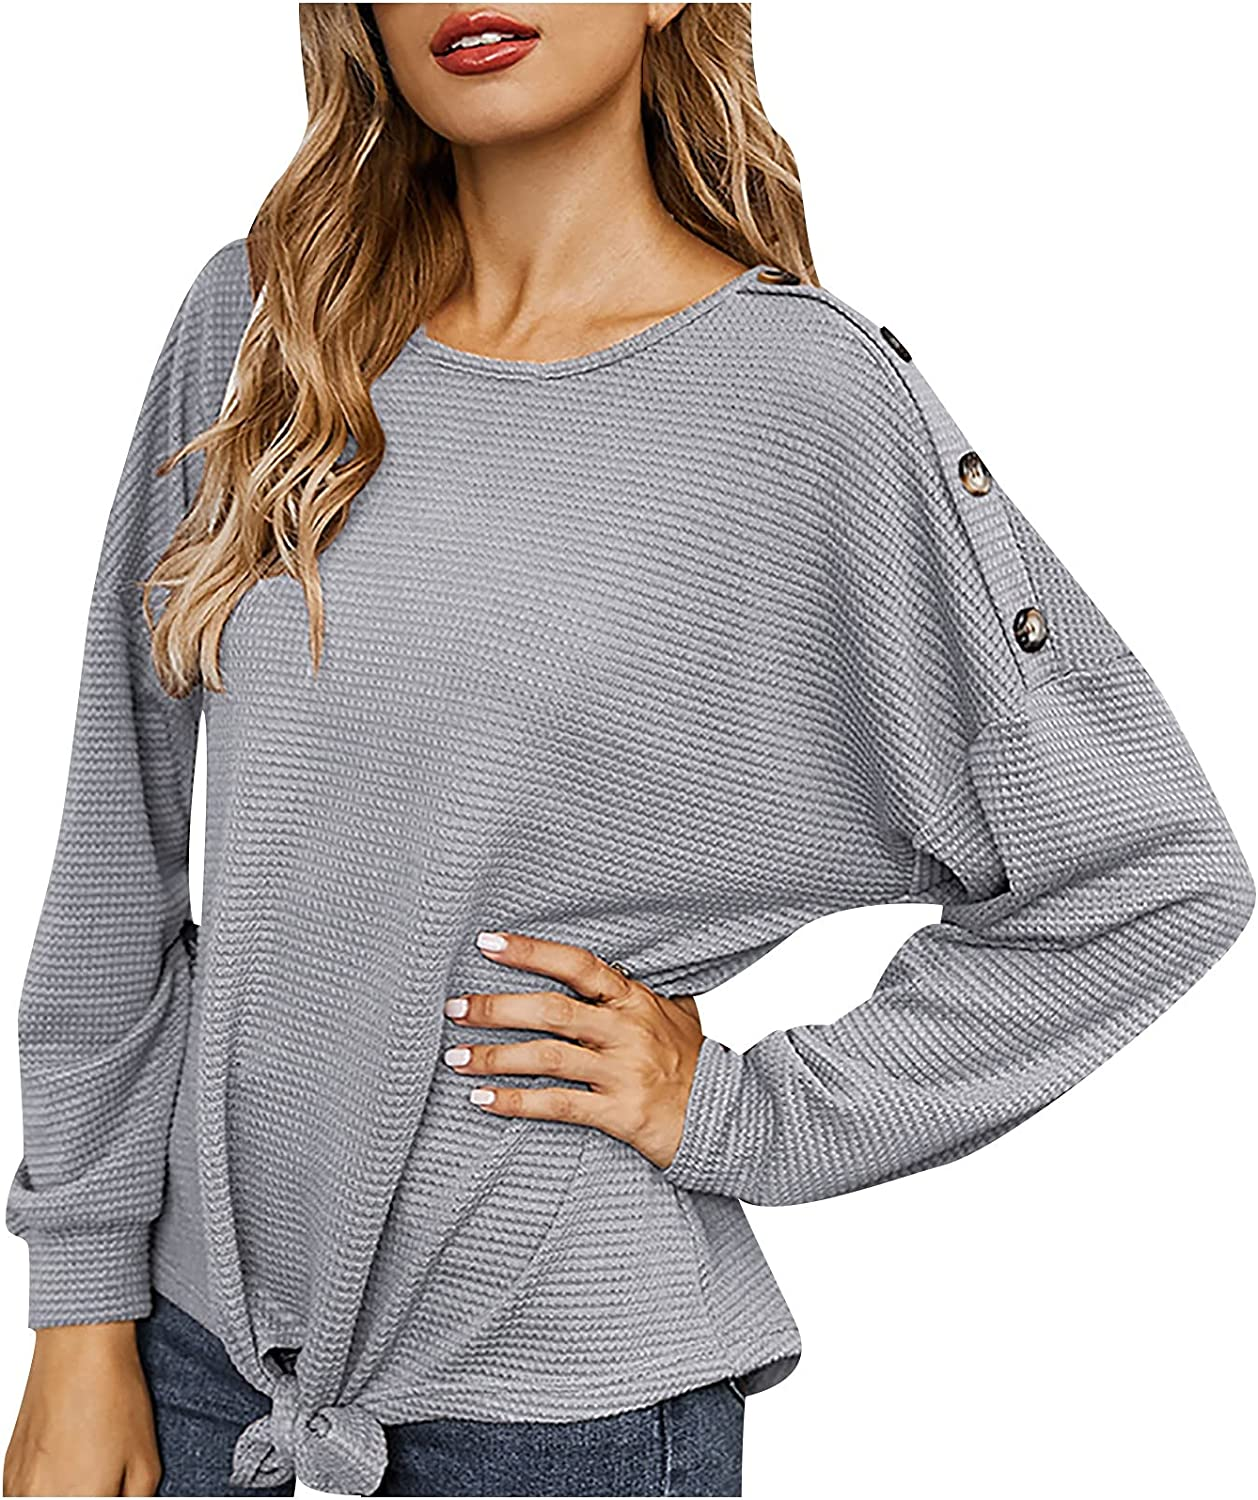 Women's Knit Tshirt Loose Bat Sleeve Blouse Solid Color Tops Fashion Twist Knot Sweater Shoulder Button Pullover